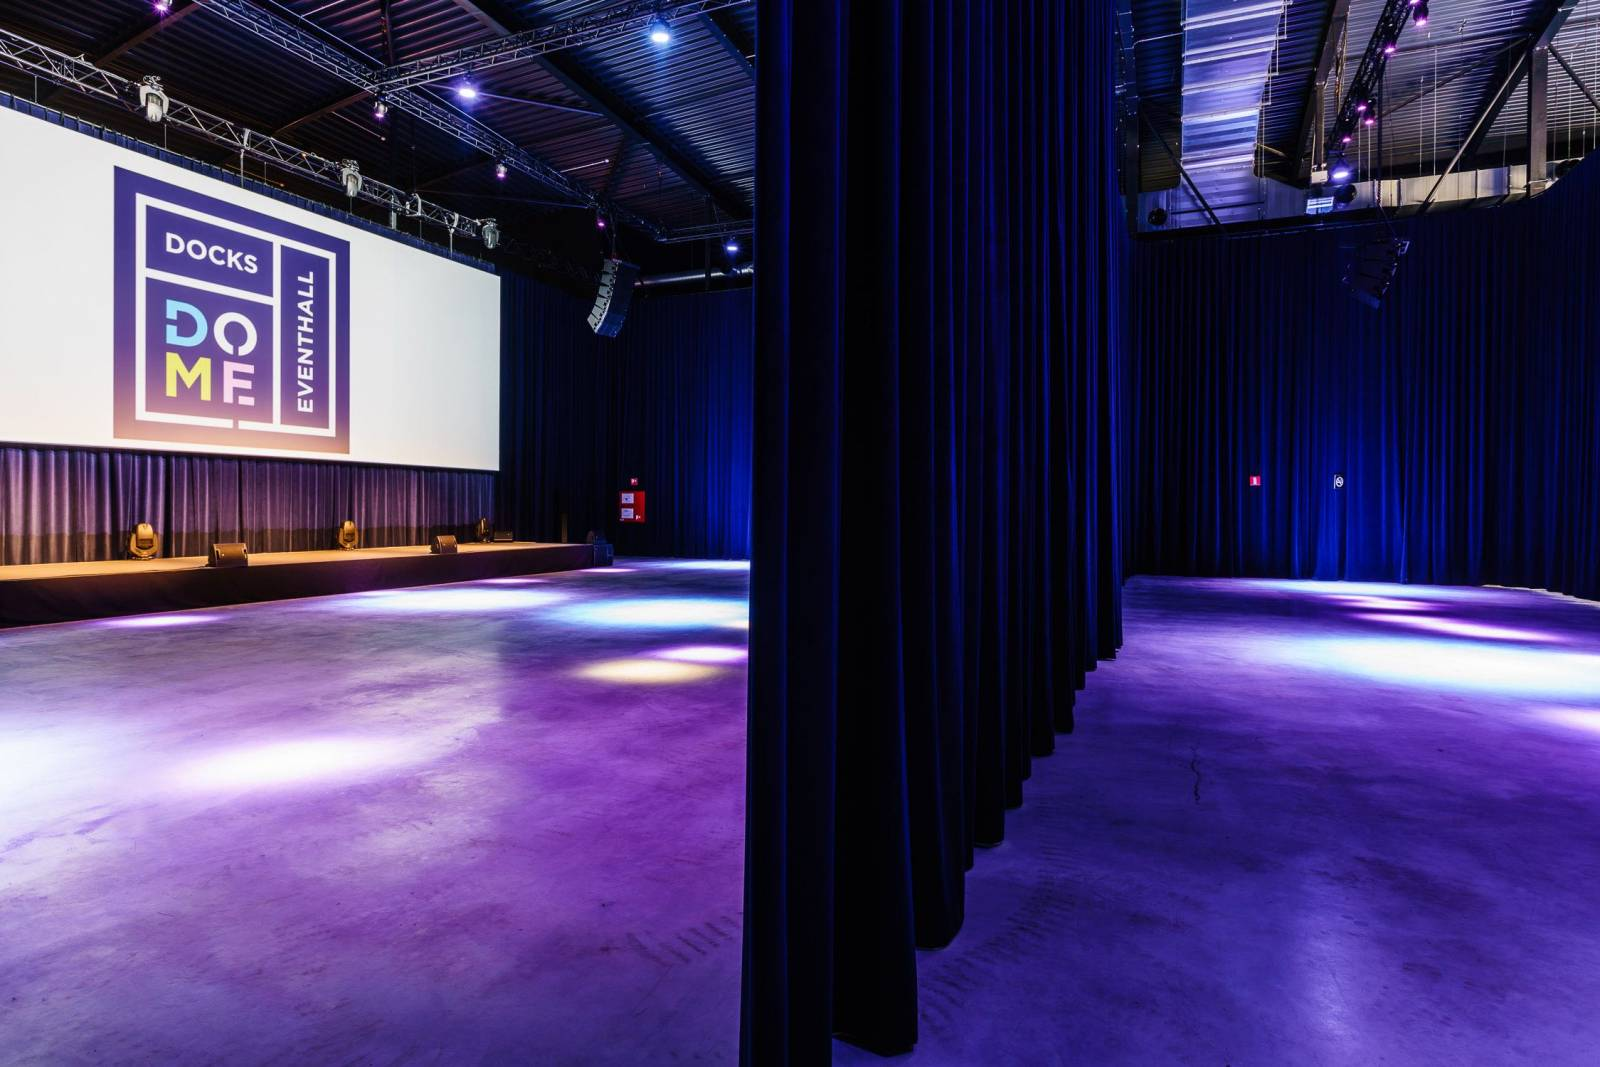 Docks Dome - Eventlocatie - Feestzaal - Brussel - House of Events - 10